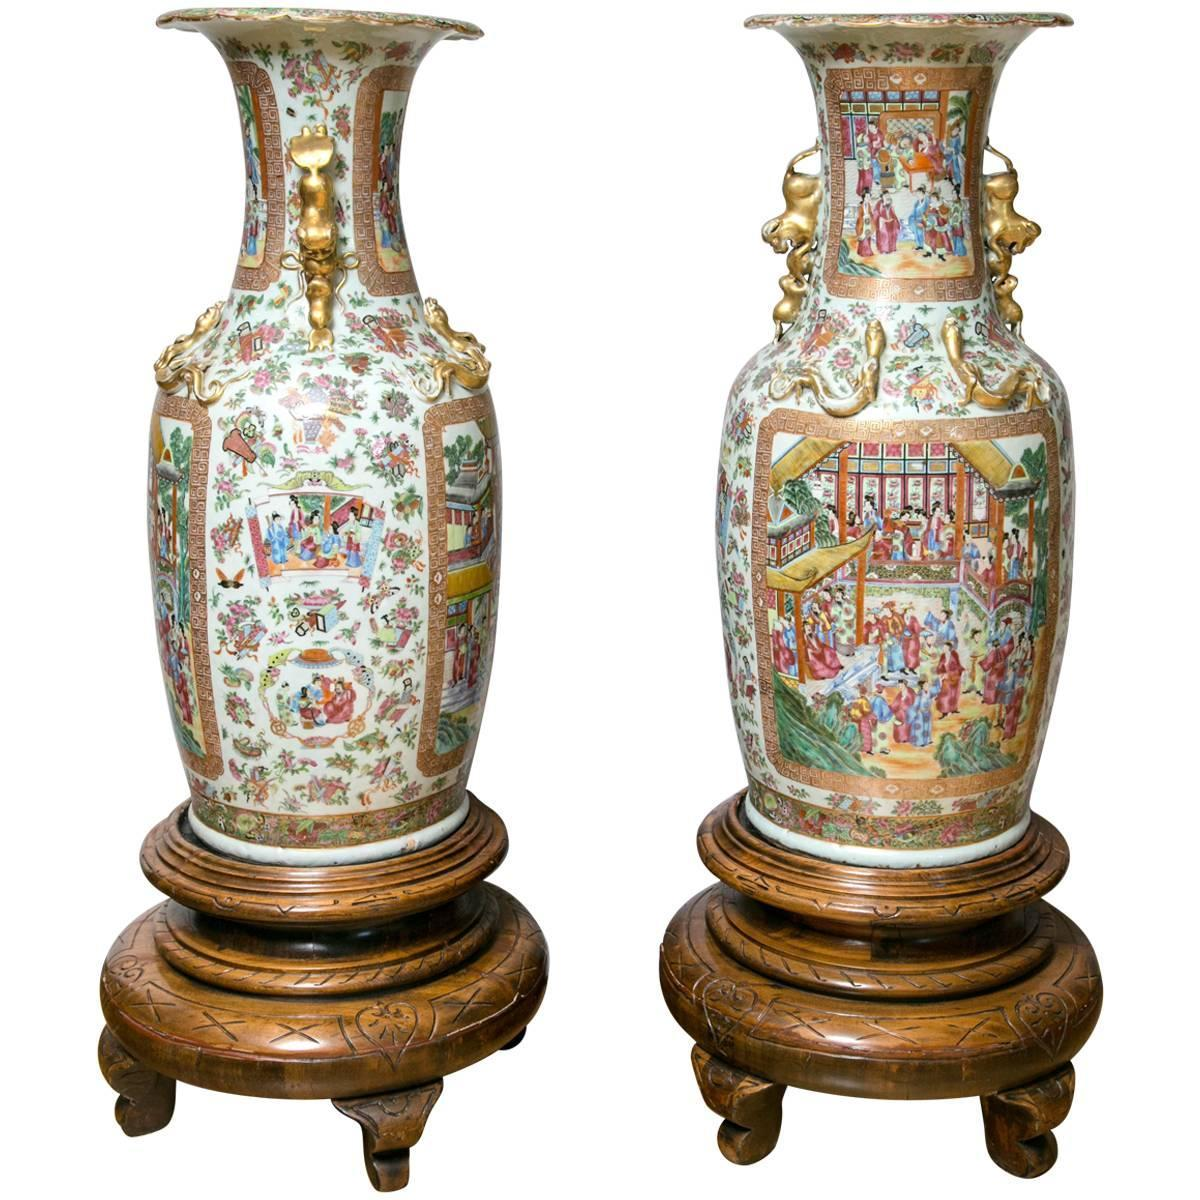 Chinese export vases and vessels 167 for sale at 1stdibs pair of large 19th century chinese cantonese floor vases on carved wood stands reviewsmspy